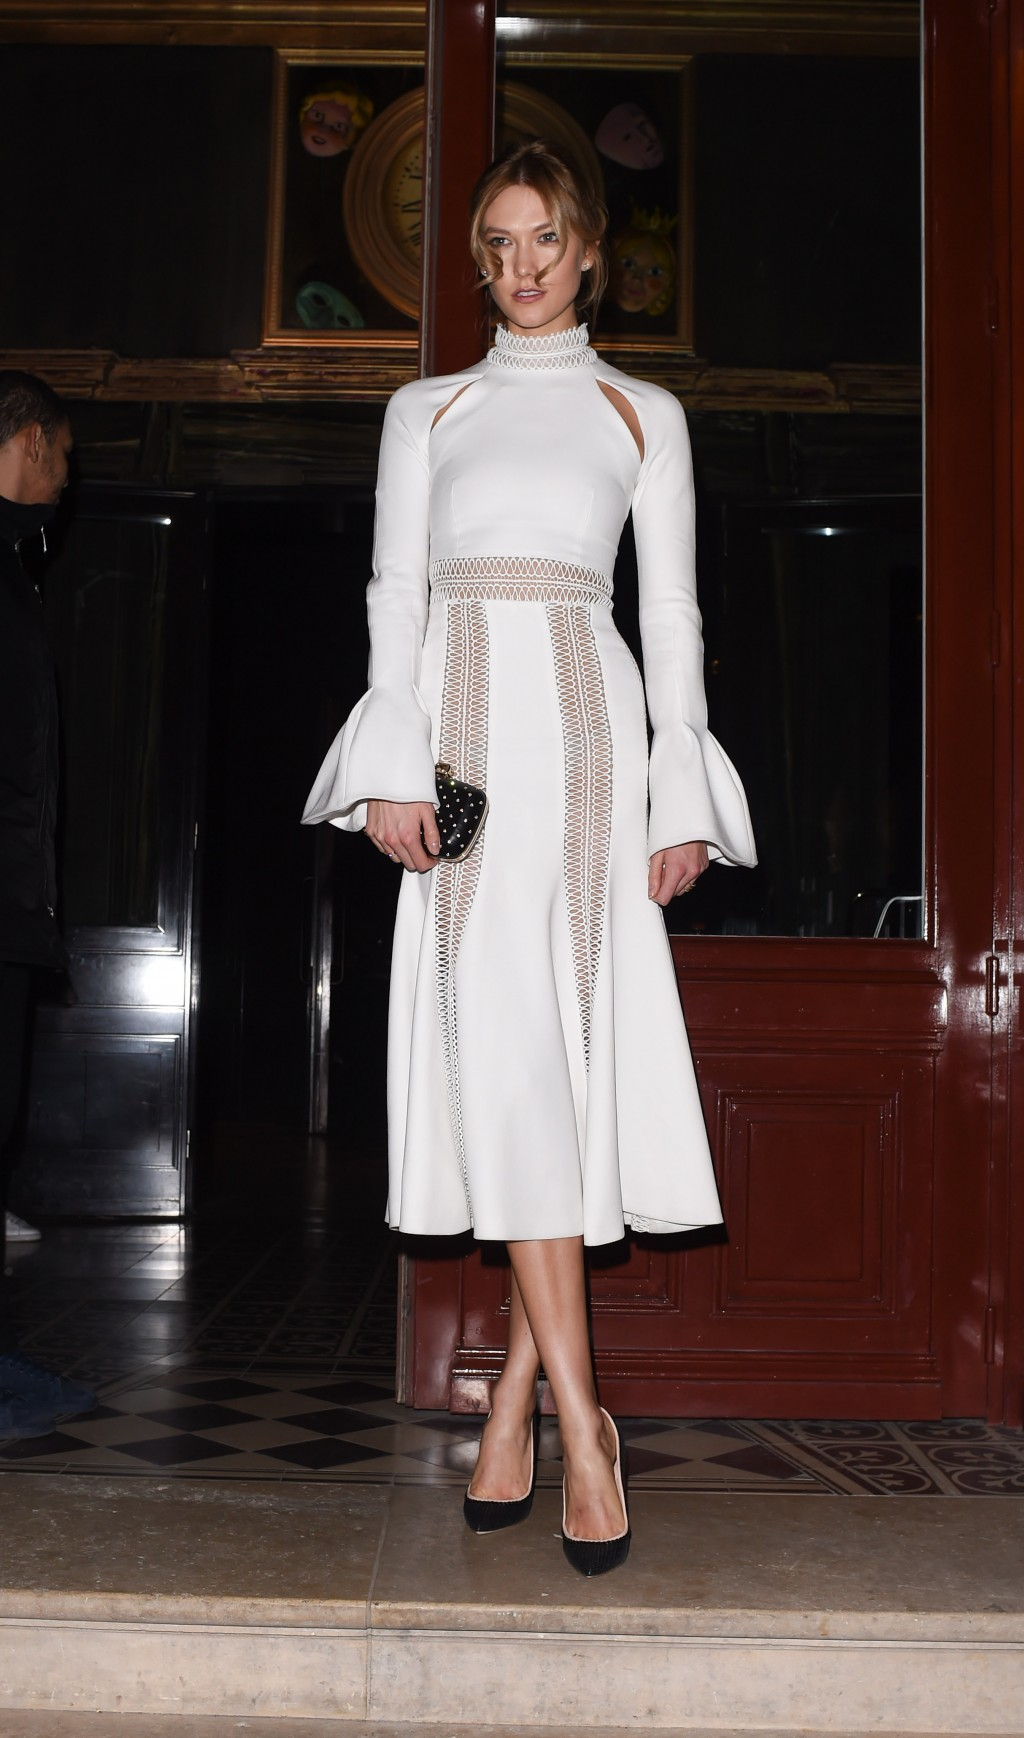 Karlie Kloss in a white Jonathan Simkhai dress at the L'Oreal party in Paris